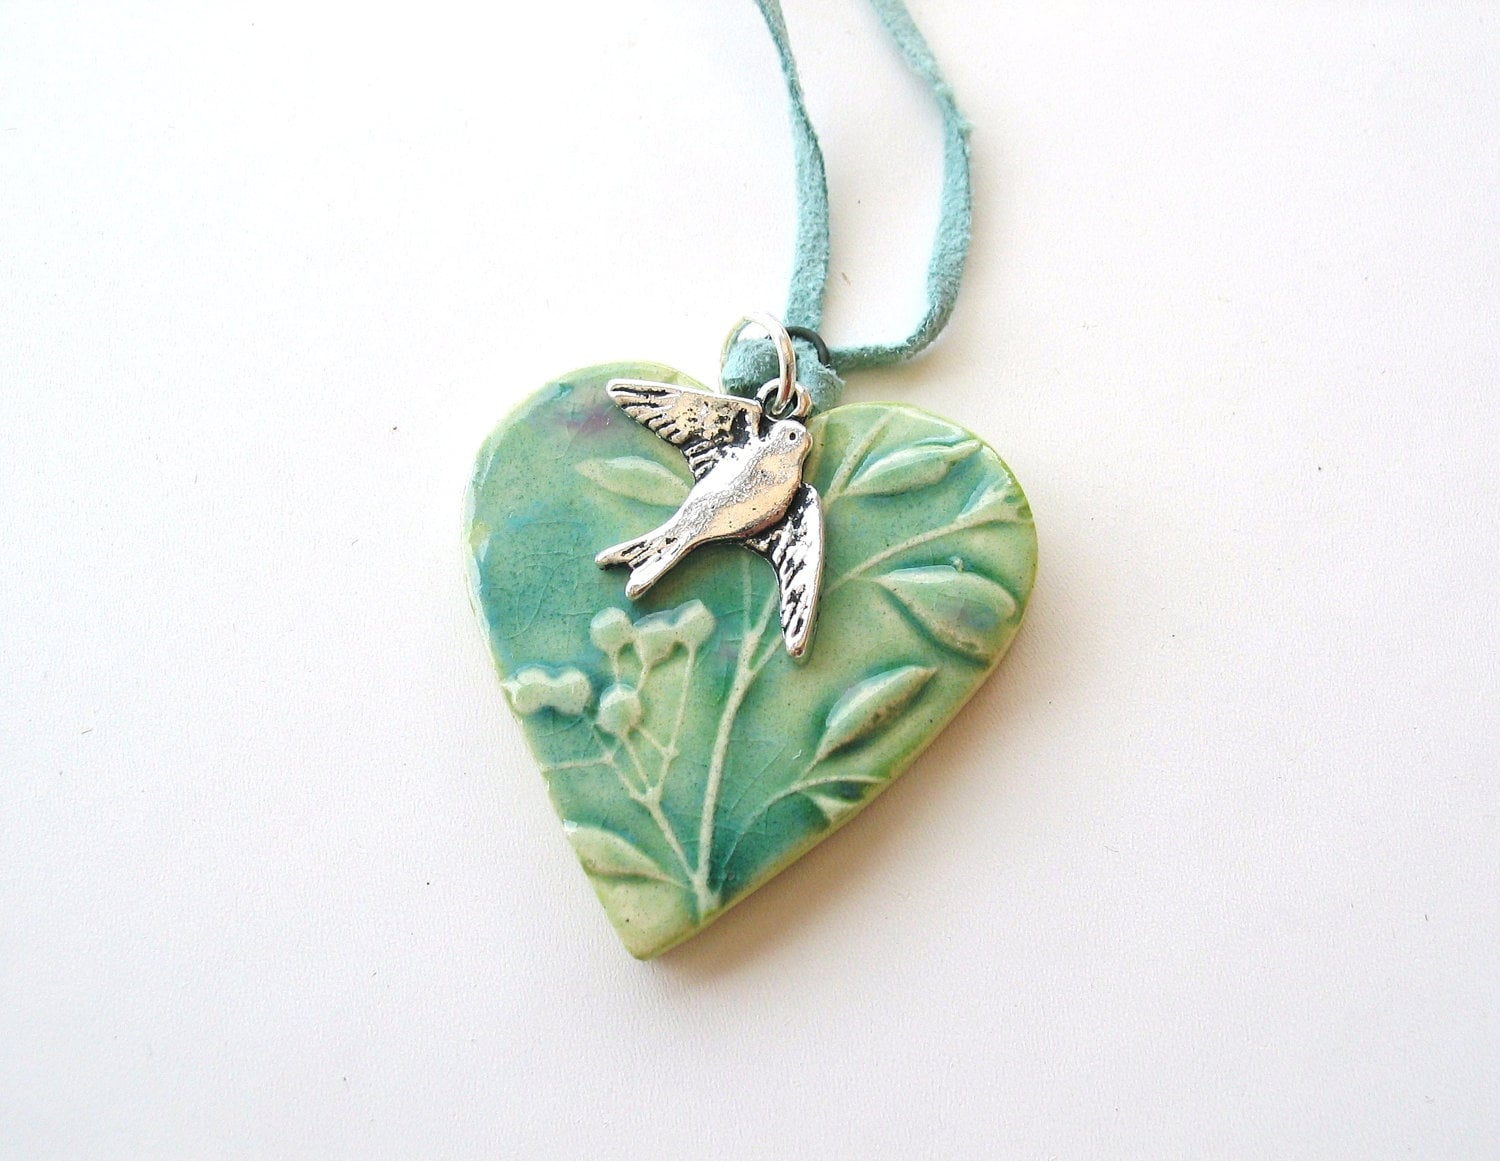 Heart pendant spring green turquoise pink glaze swallow seafoam suede Valentine's Day - damsontreepottery